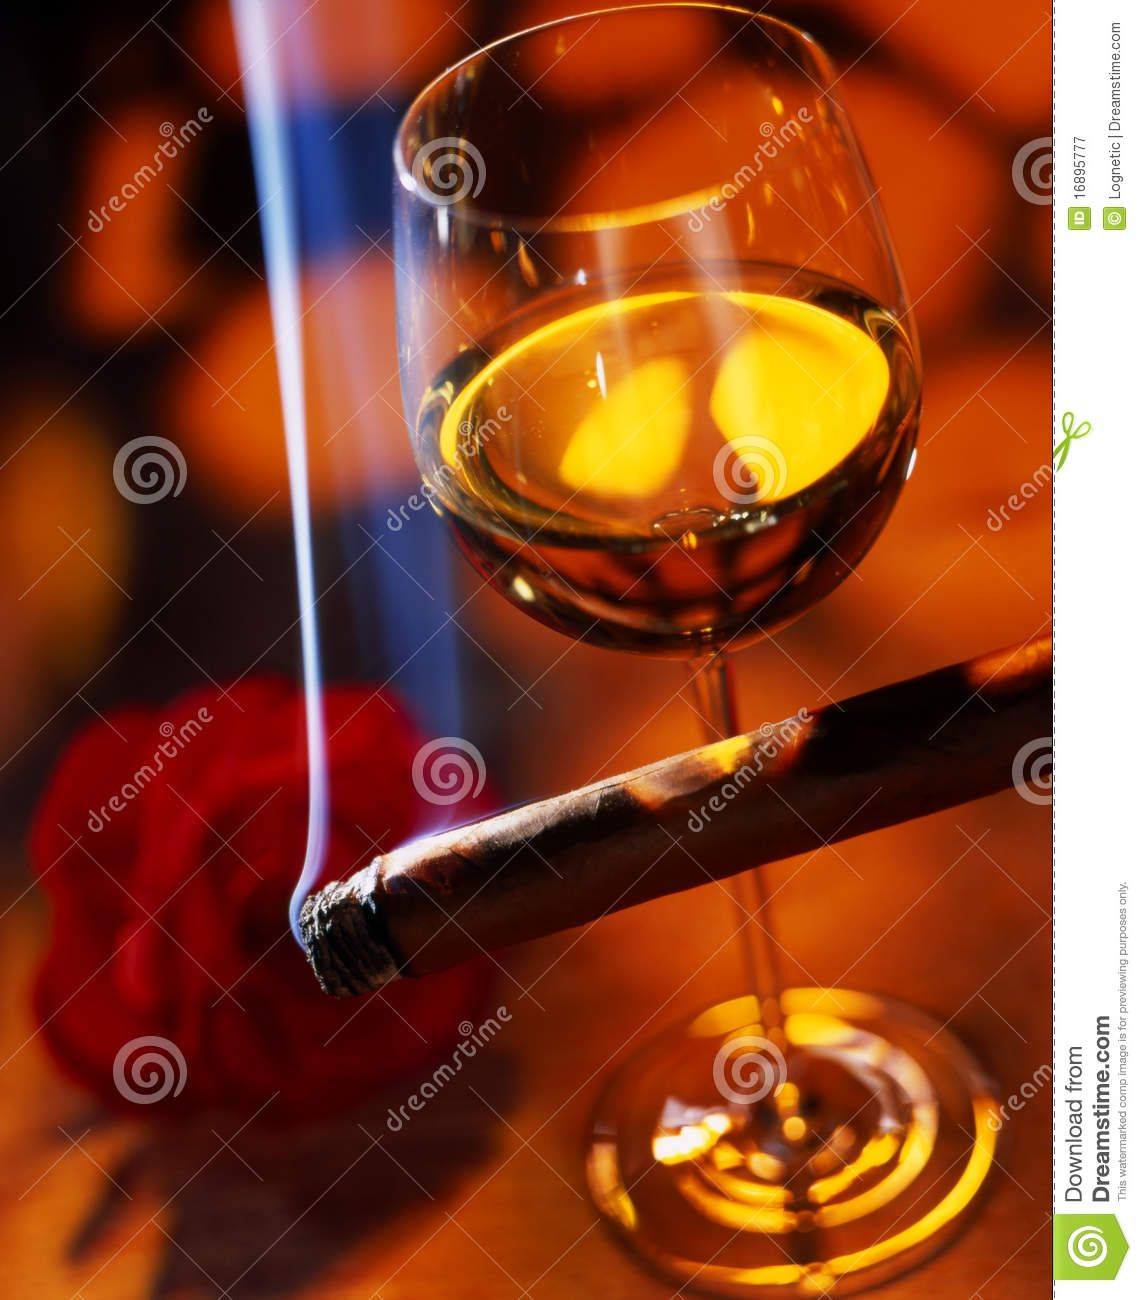 Photo About Glass Of Wine With A Cigar In A Red Ambience Image Of Background Enjoyment Celebration 16895777 In 2020 Wine Cigars Wine Design